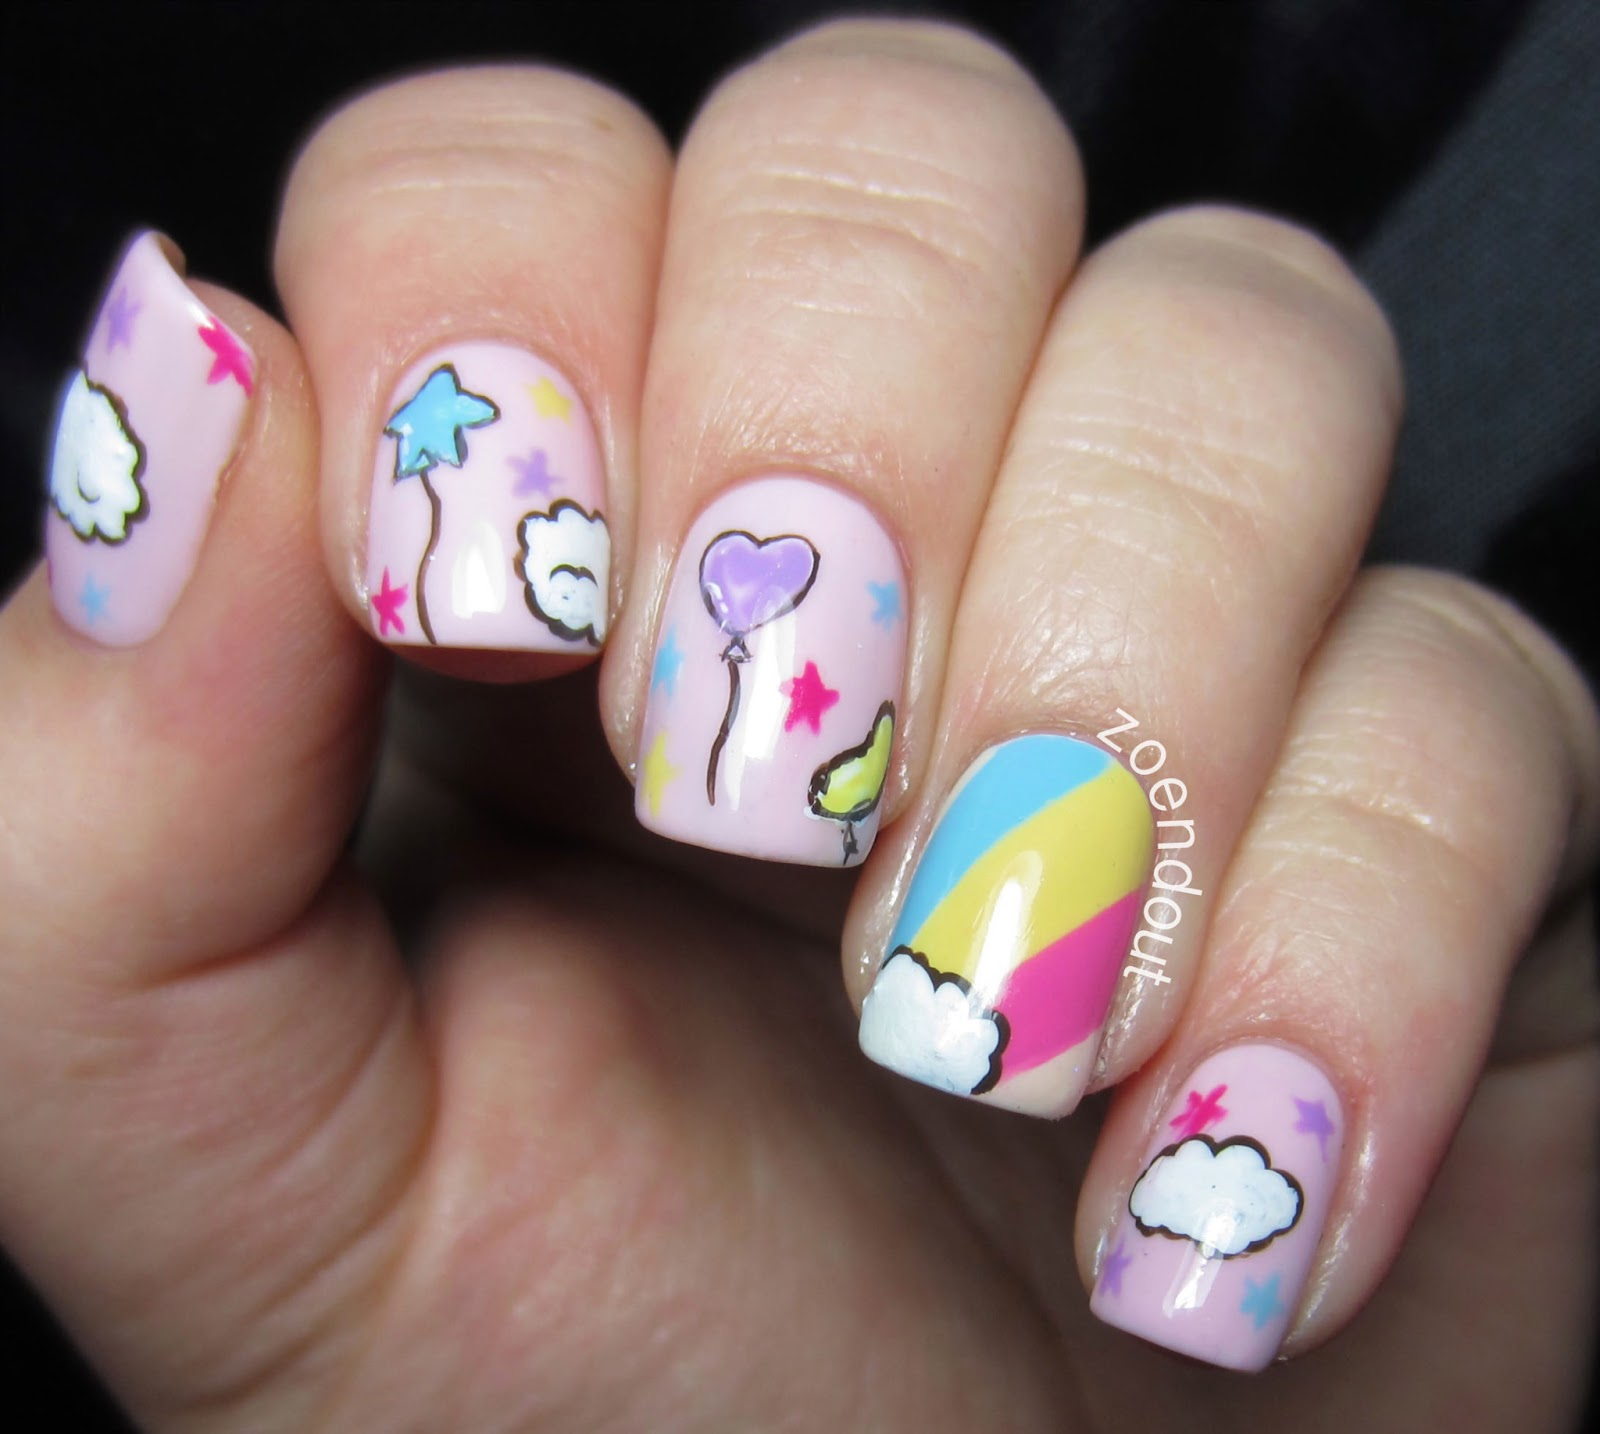 Zoendout Nails: Rainbows & Clouds & Balloons, Oh My!